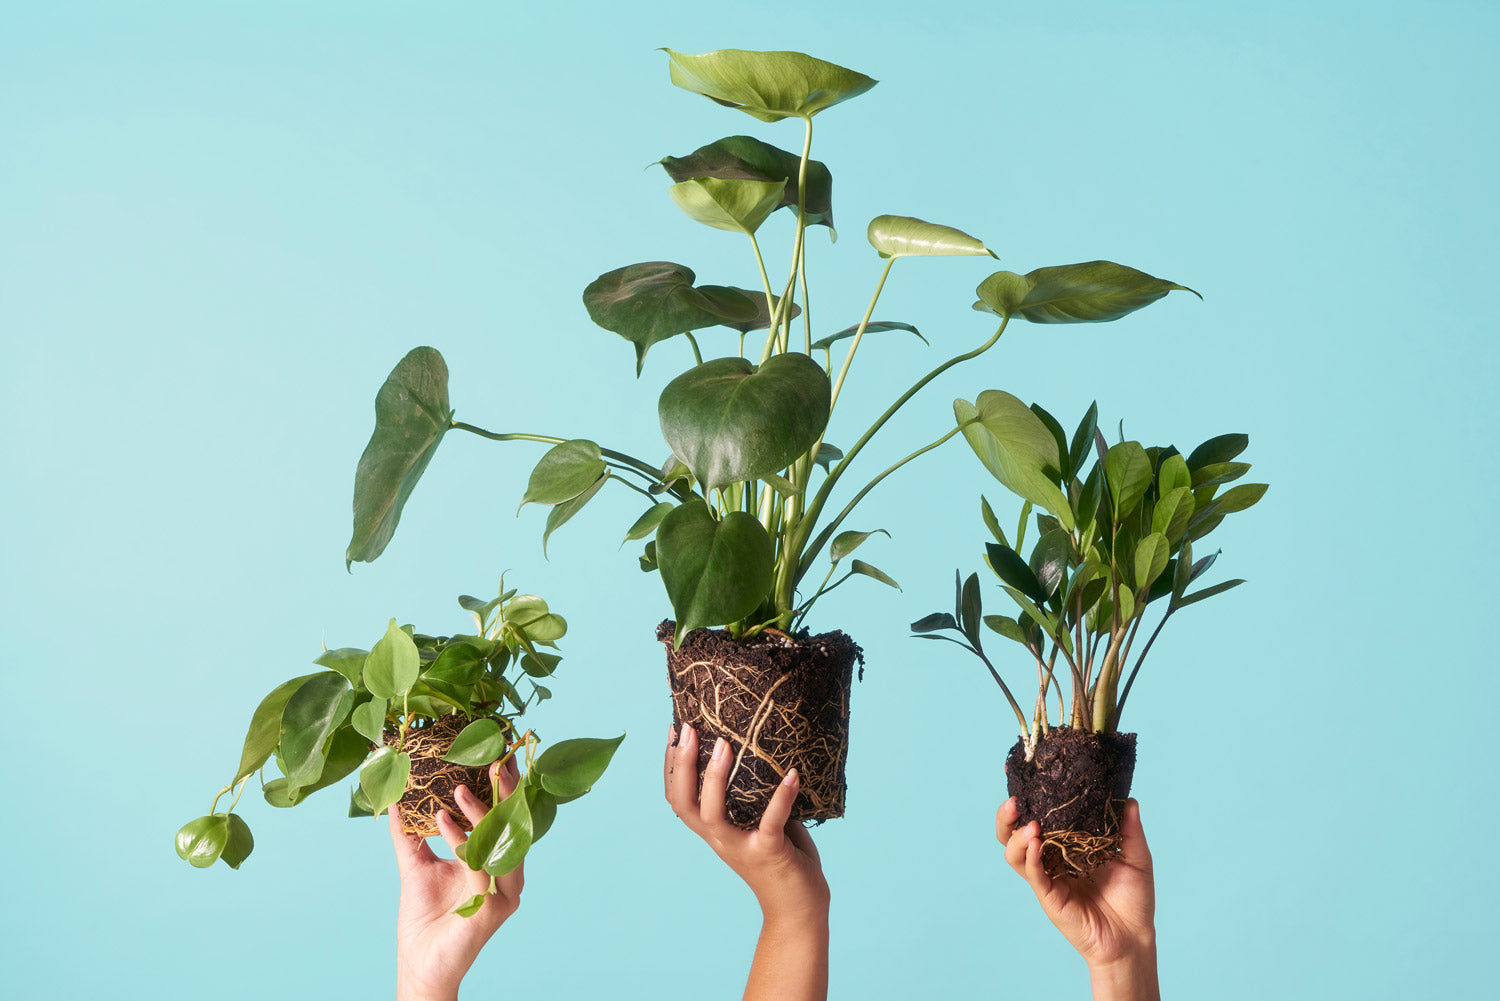 Three Hands Holding Up Plants